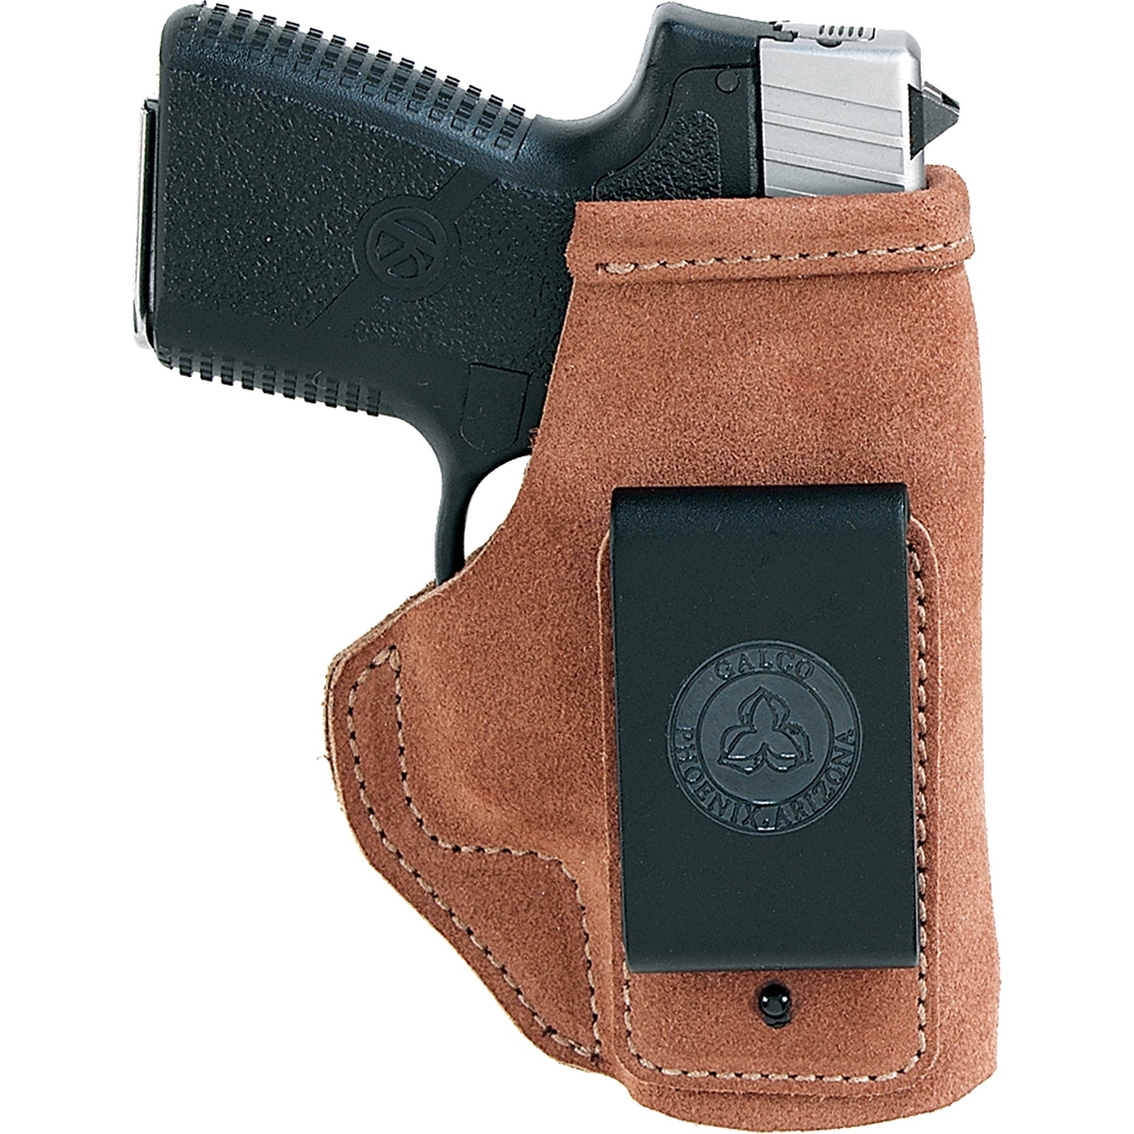 Galco Stow-n-go Inside The Pant Holster S&w J Frame Right Hand ...